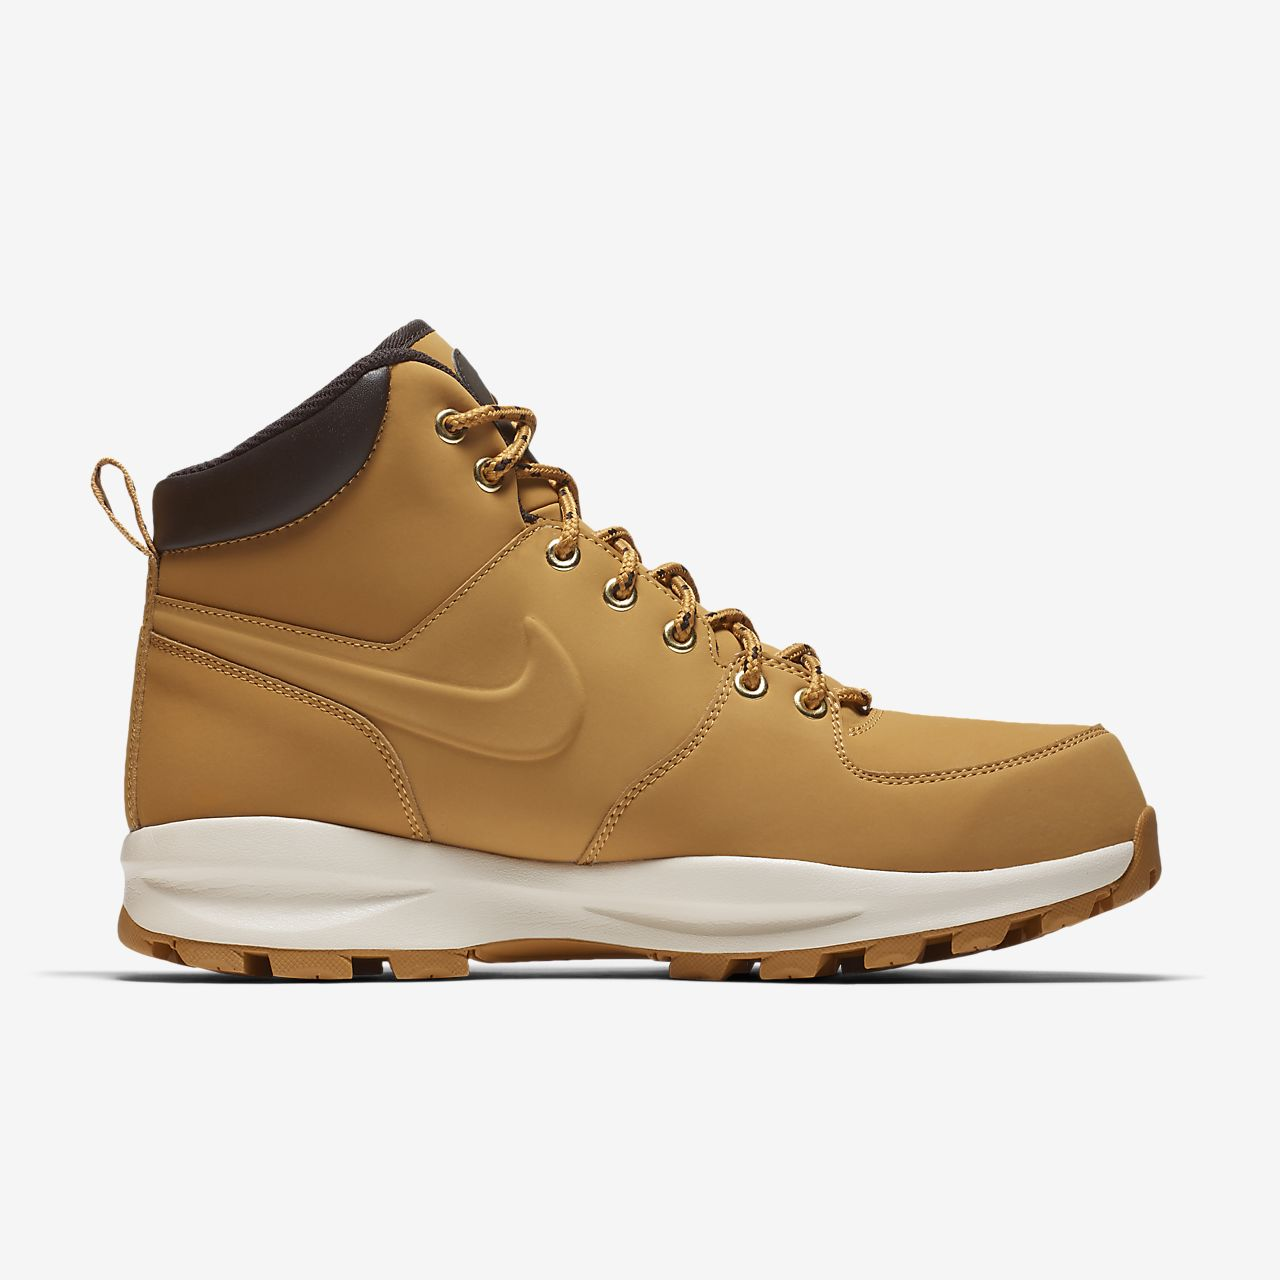 premium selection 4a984 17b5b nike manoa leather boots